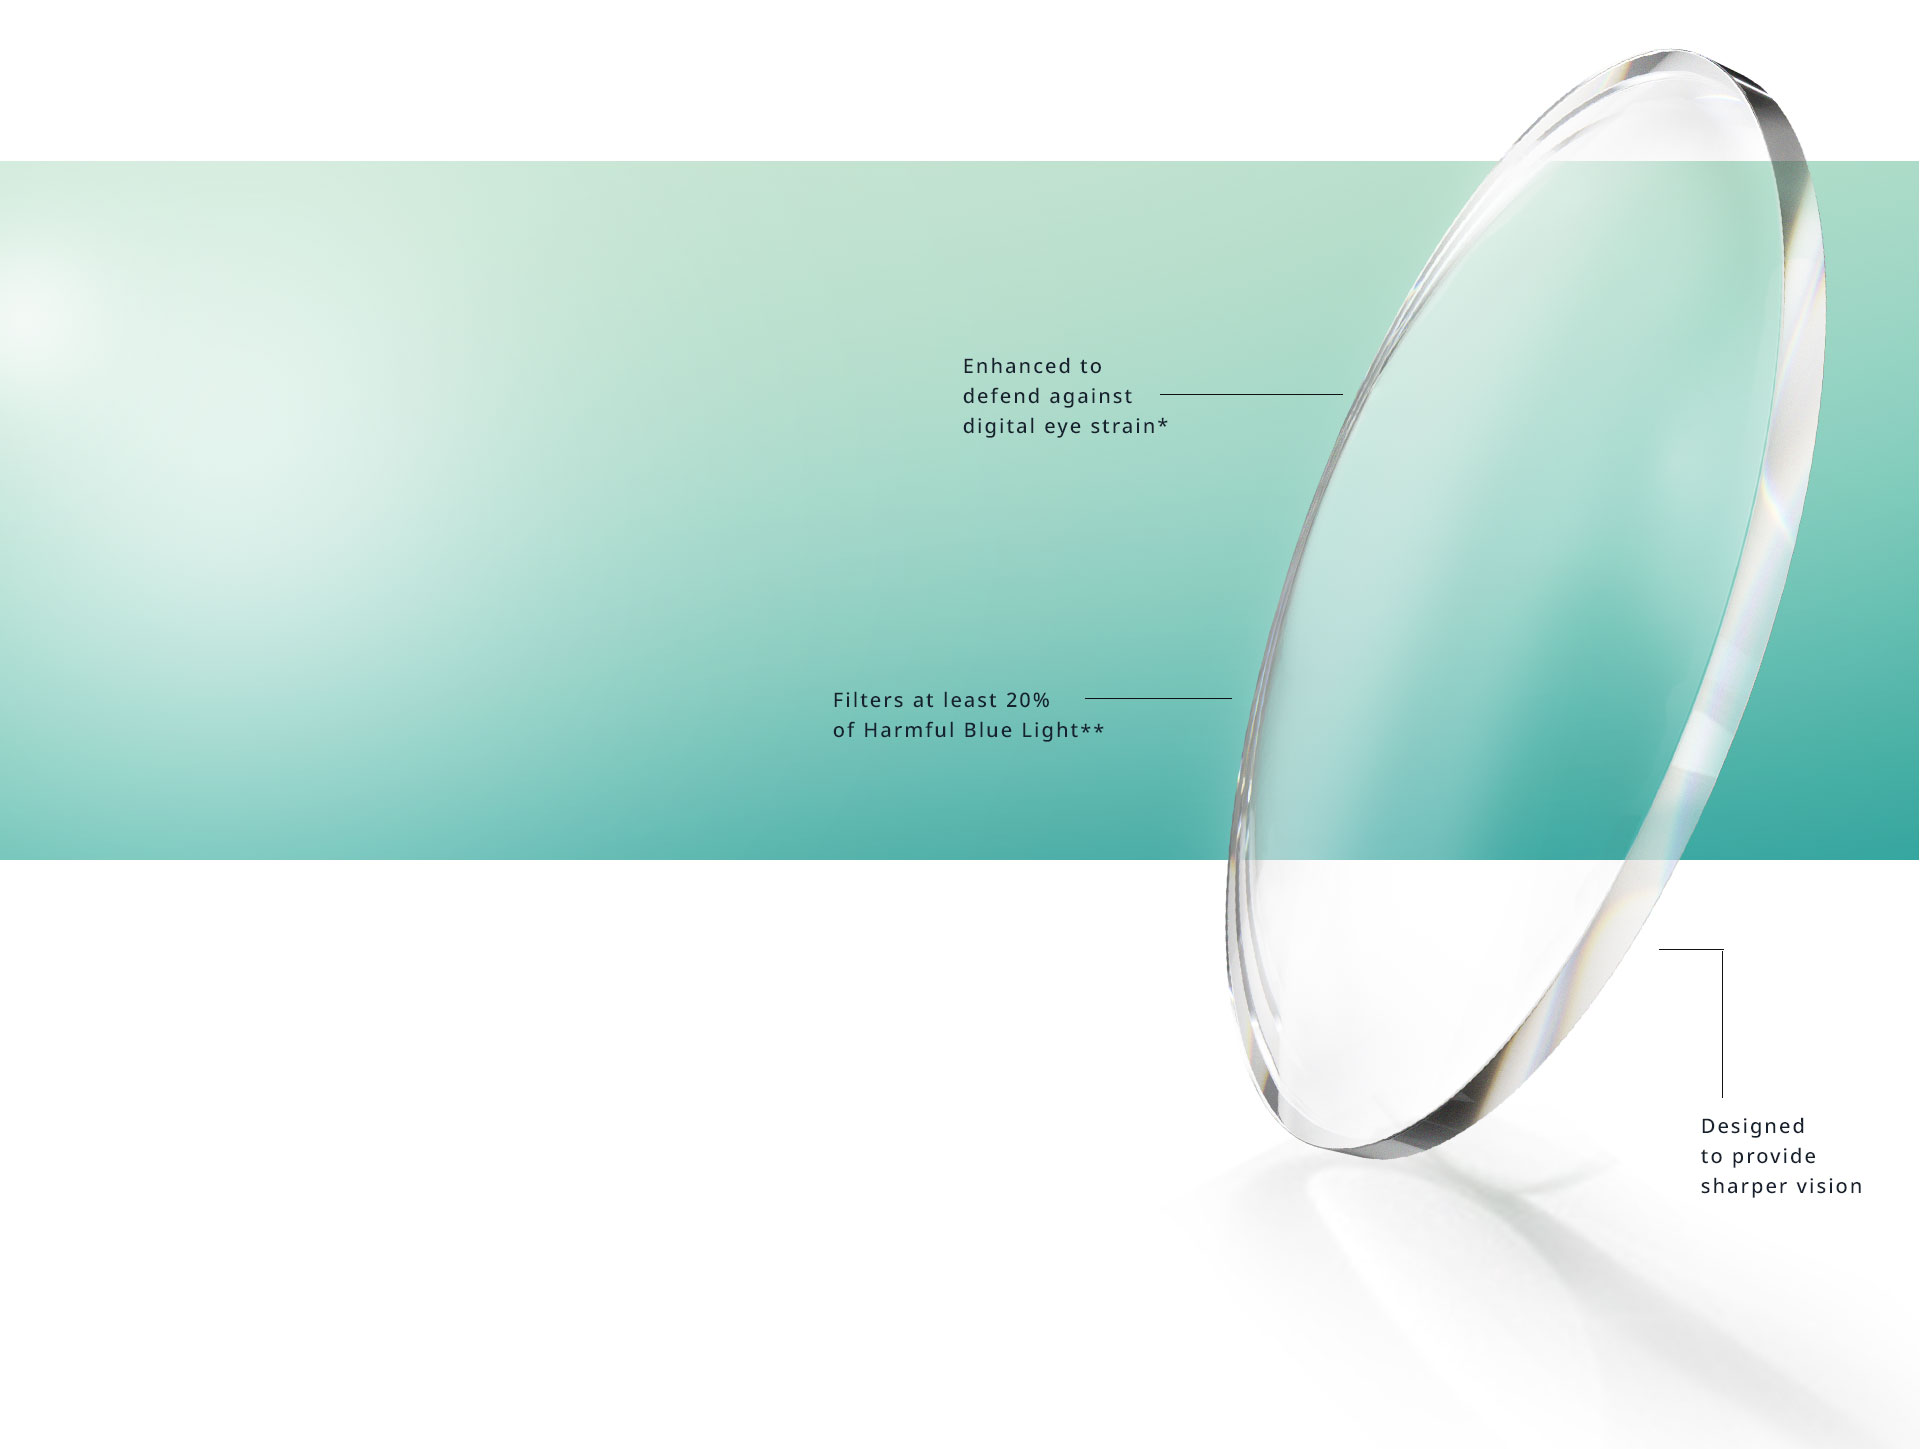 bdaf01f6aa6 Eyezen lenses filter at least 20% of harmful blue light   and are designed